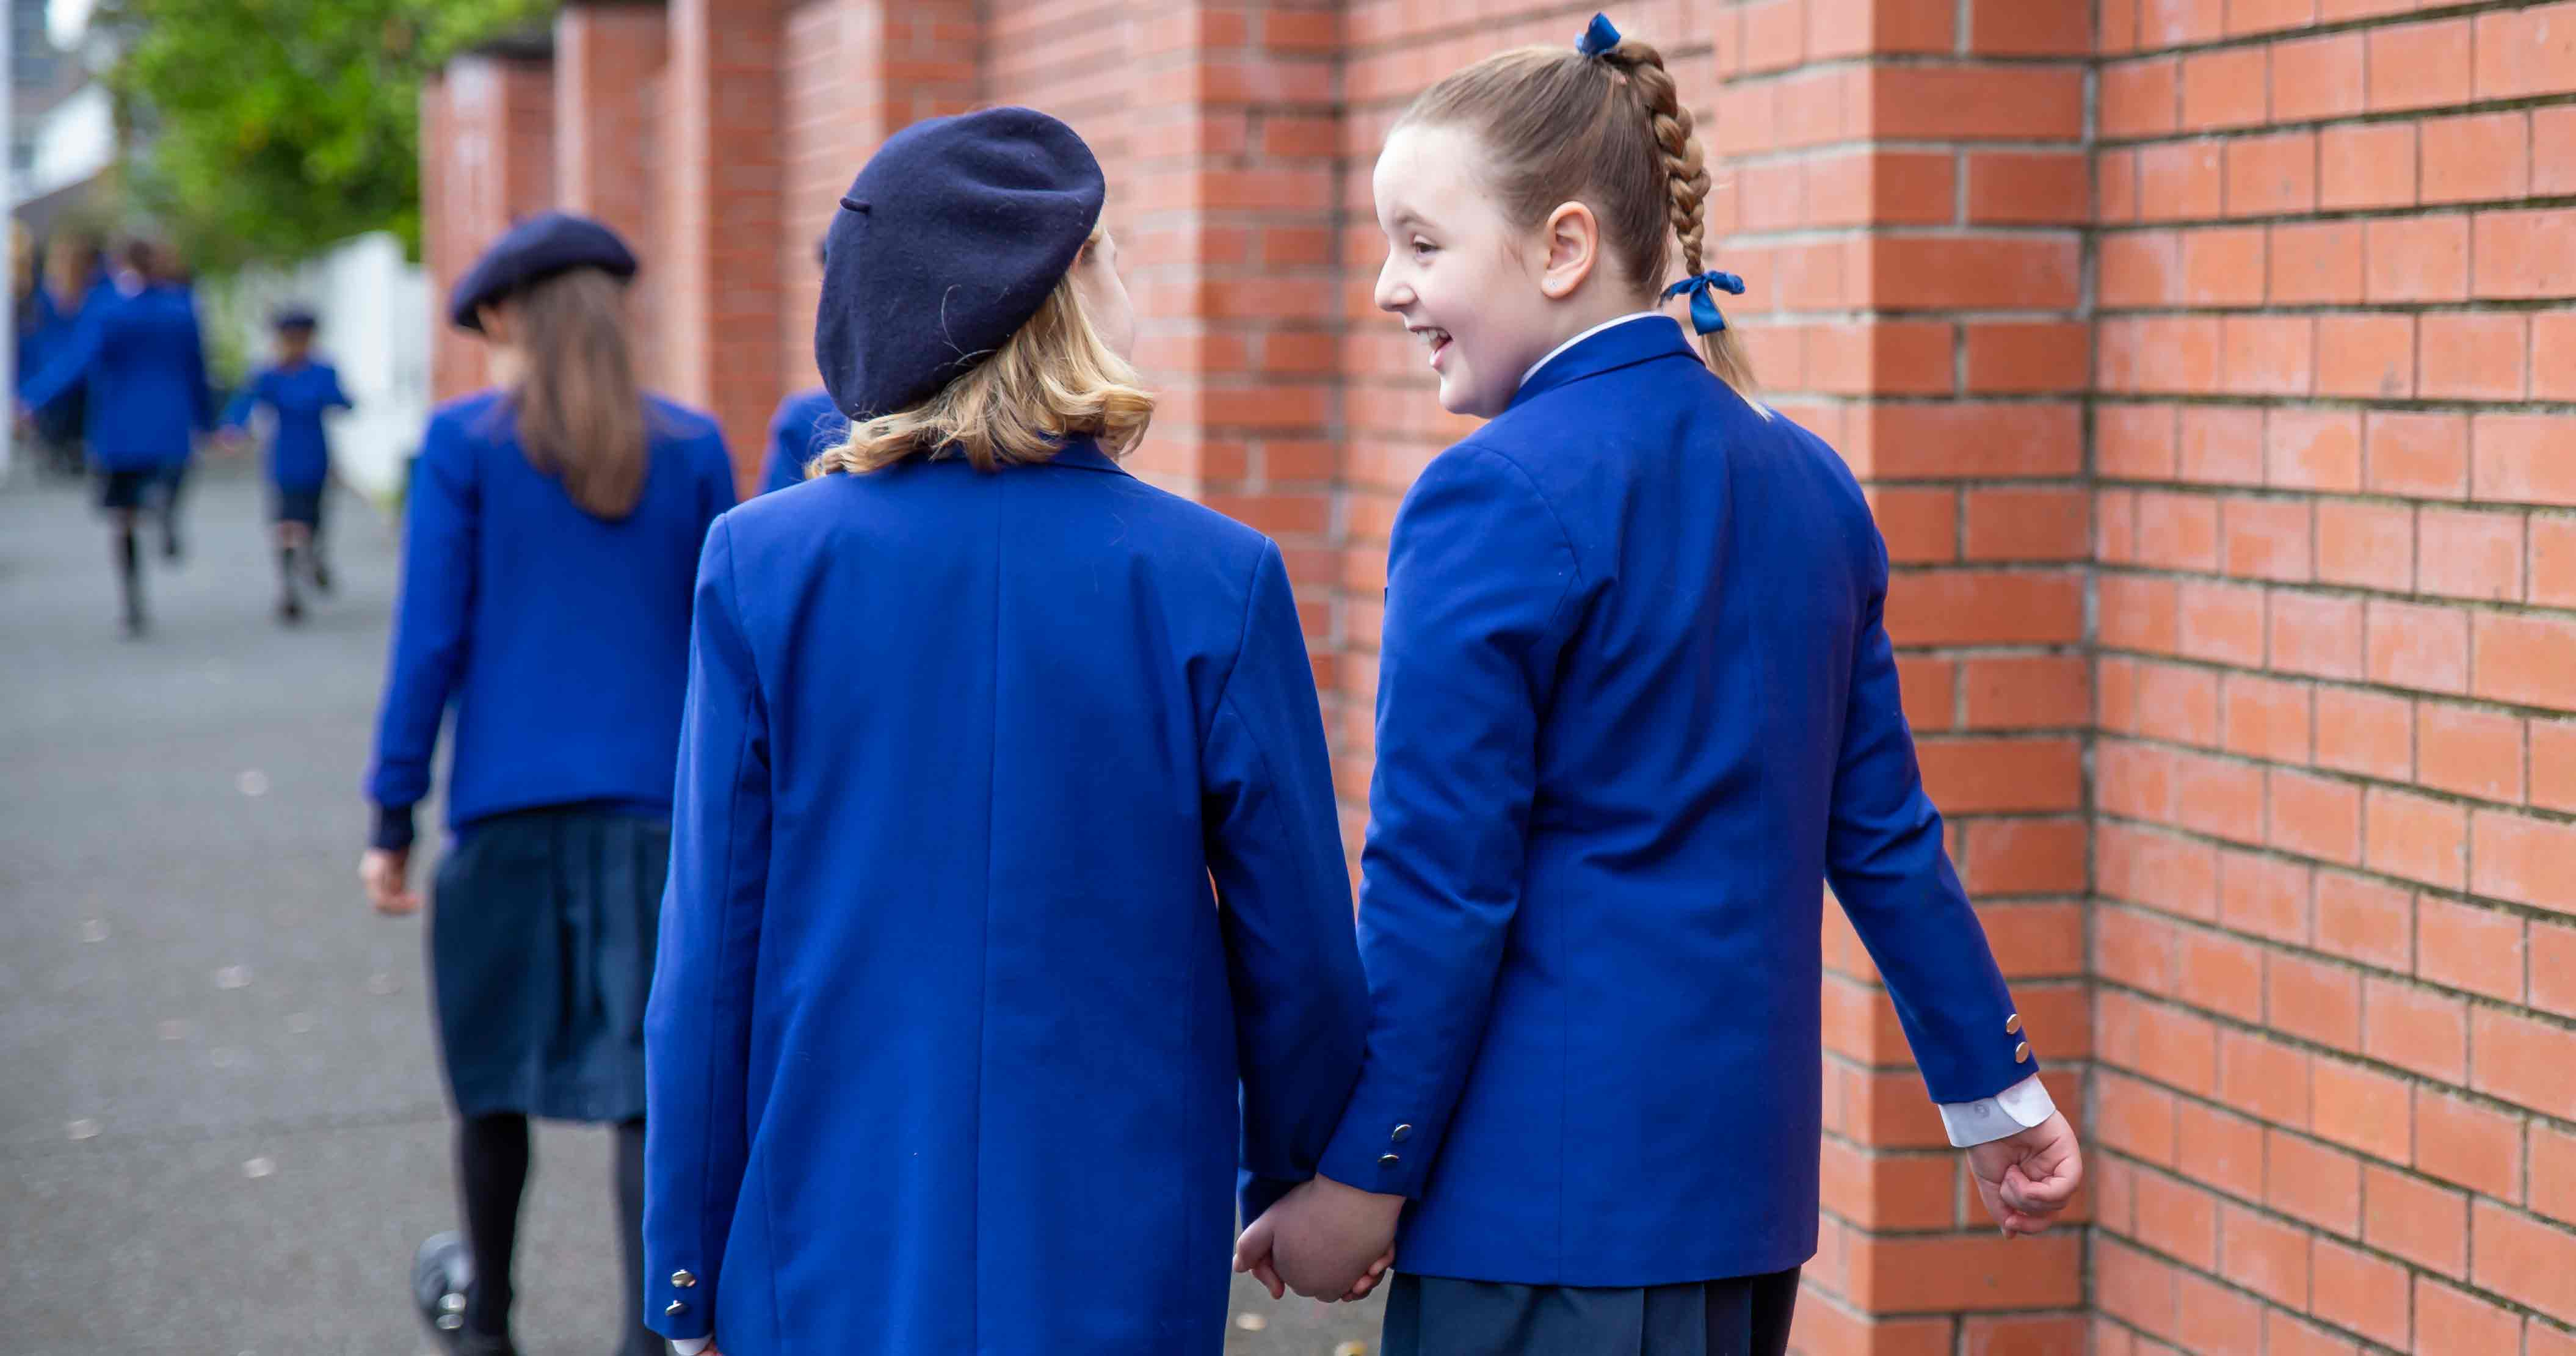 Saint-Kentigern-Girls-School-Peer-Support.jpg